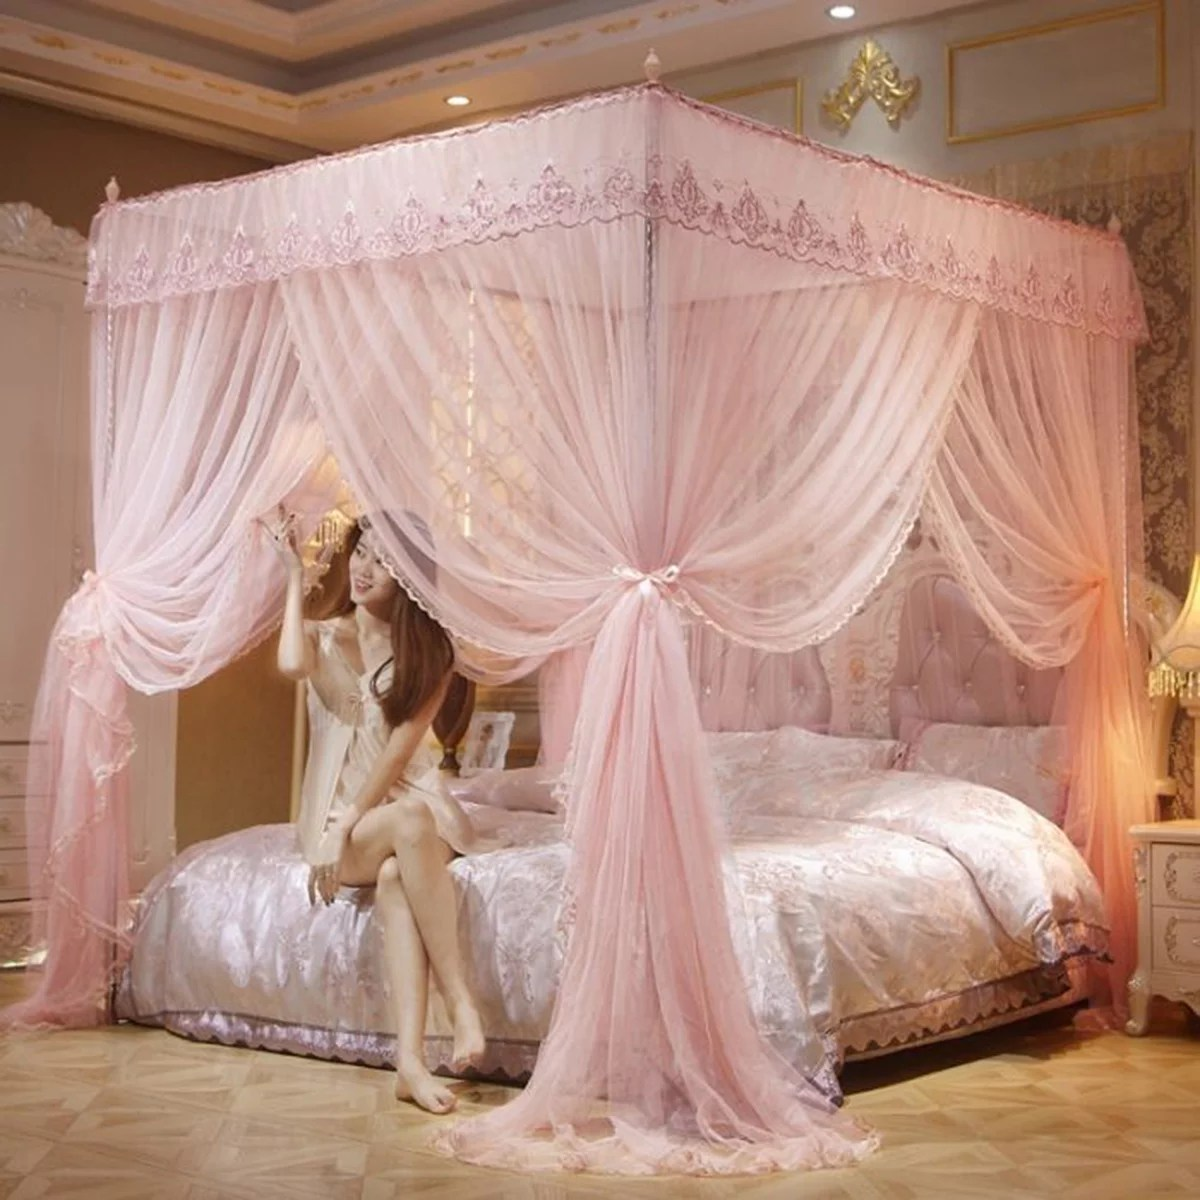 four corner canopy bed curtains princess style bed canopy bedroom decor for home hotel decor 6 6 6ft for full to large size bed